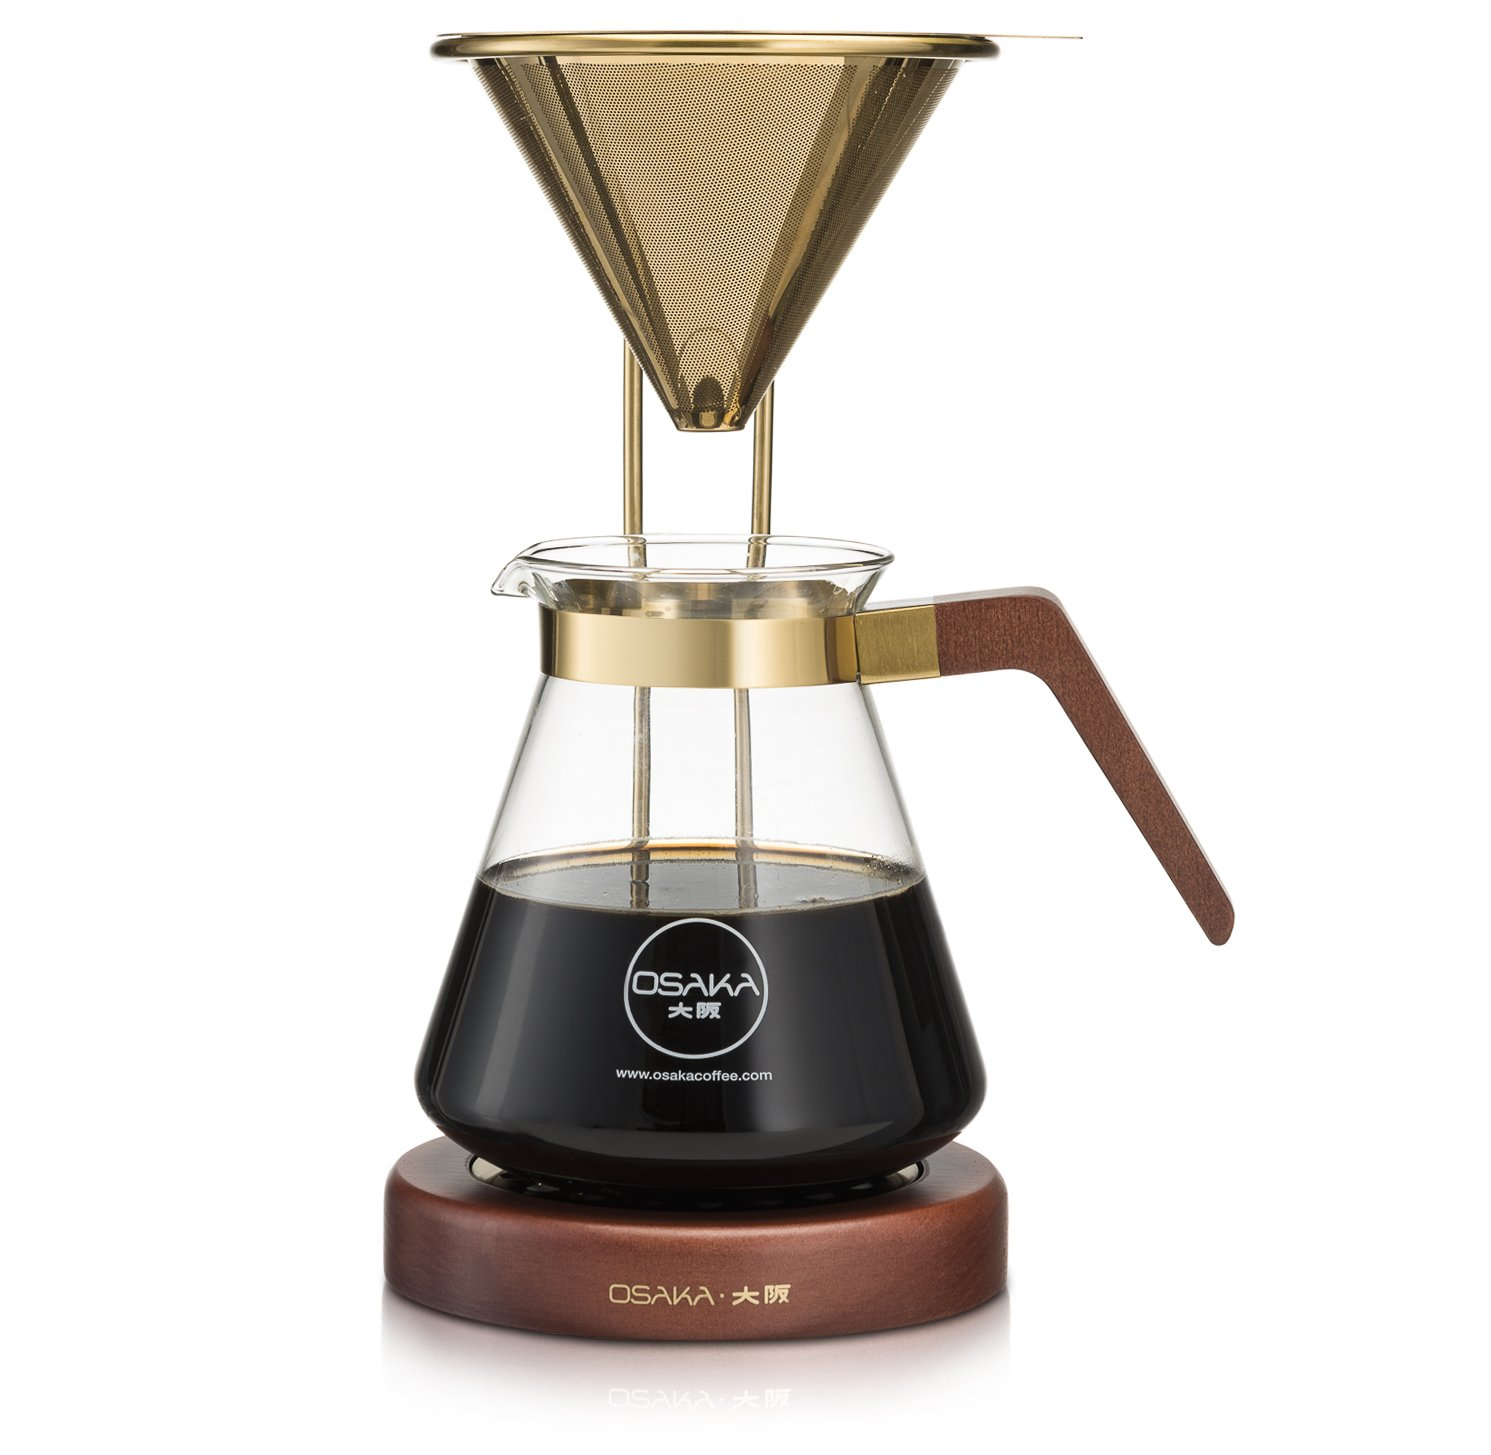 Osaka, Pour Over Coffee Brewer – Large Capacity, Pourover Coffee Maker With Titanium Coated Gold Filter And Wood Stand – Complete Set Needed To Brew Pour-Over Coffee – 6 Cups, (30oz./900ml) Capacity